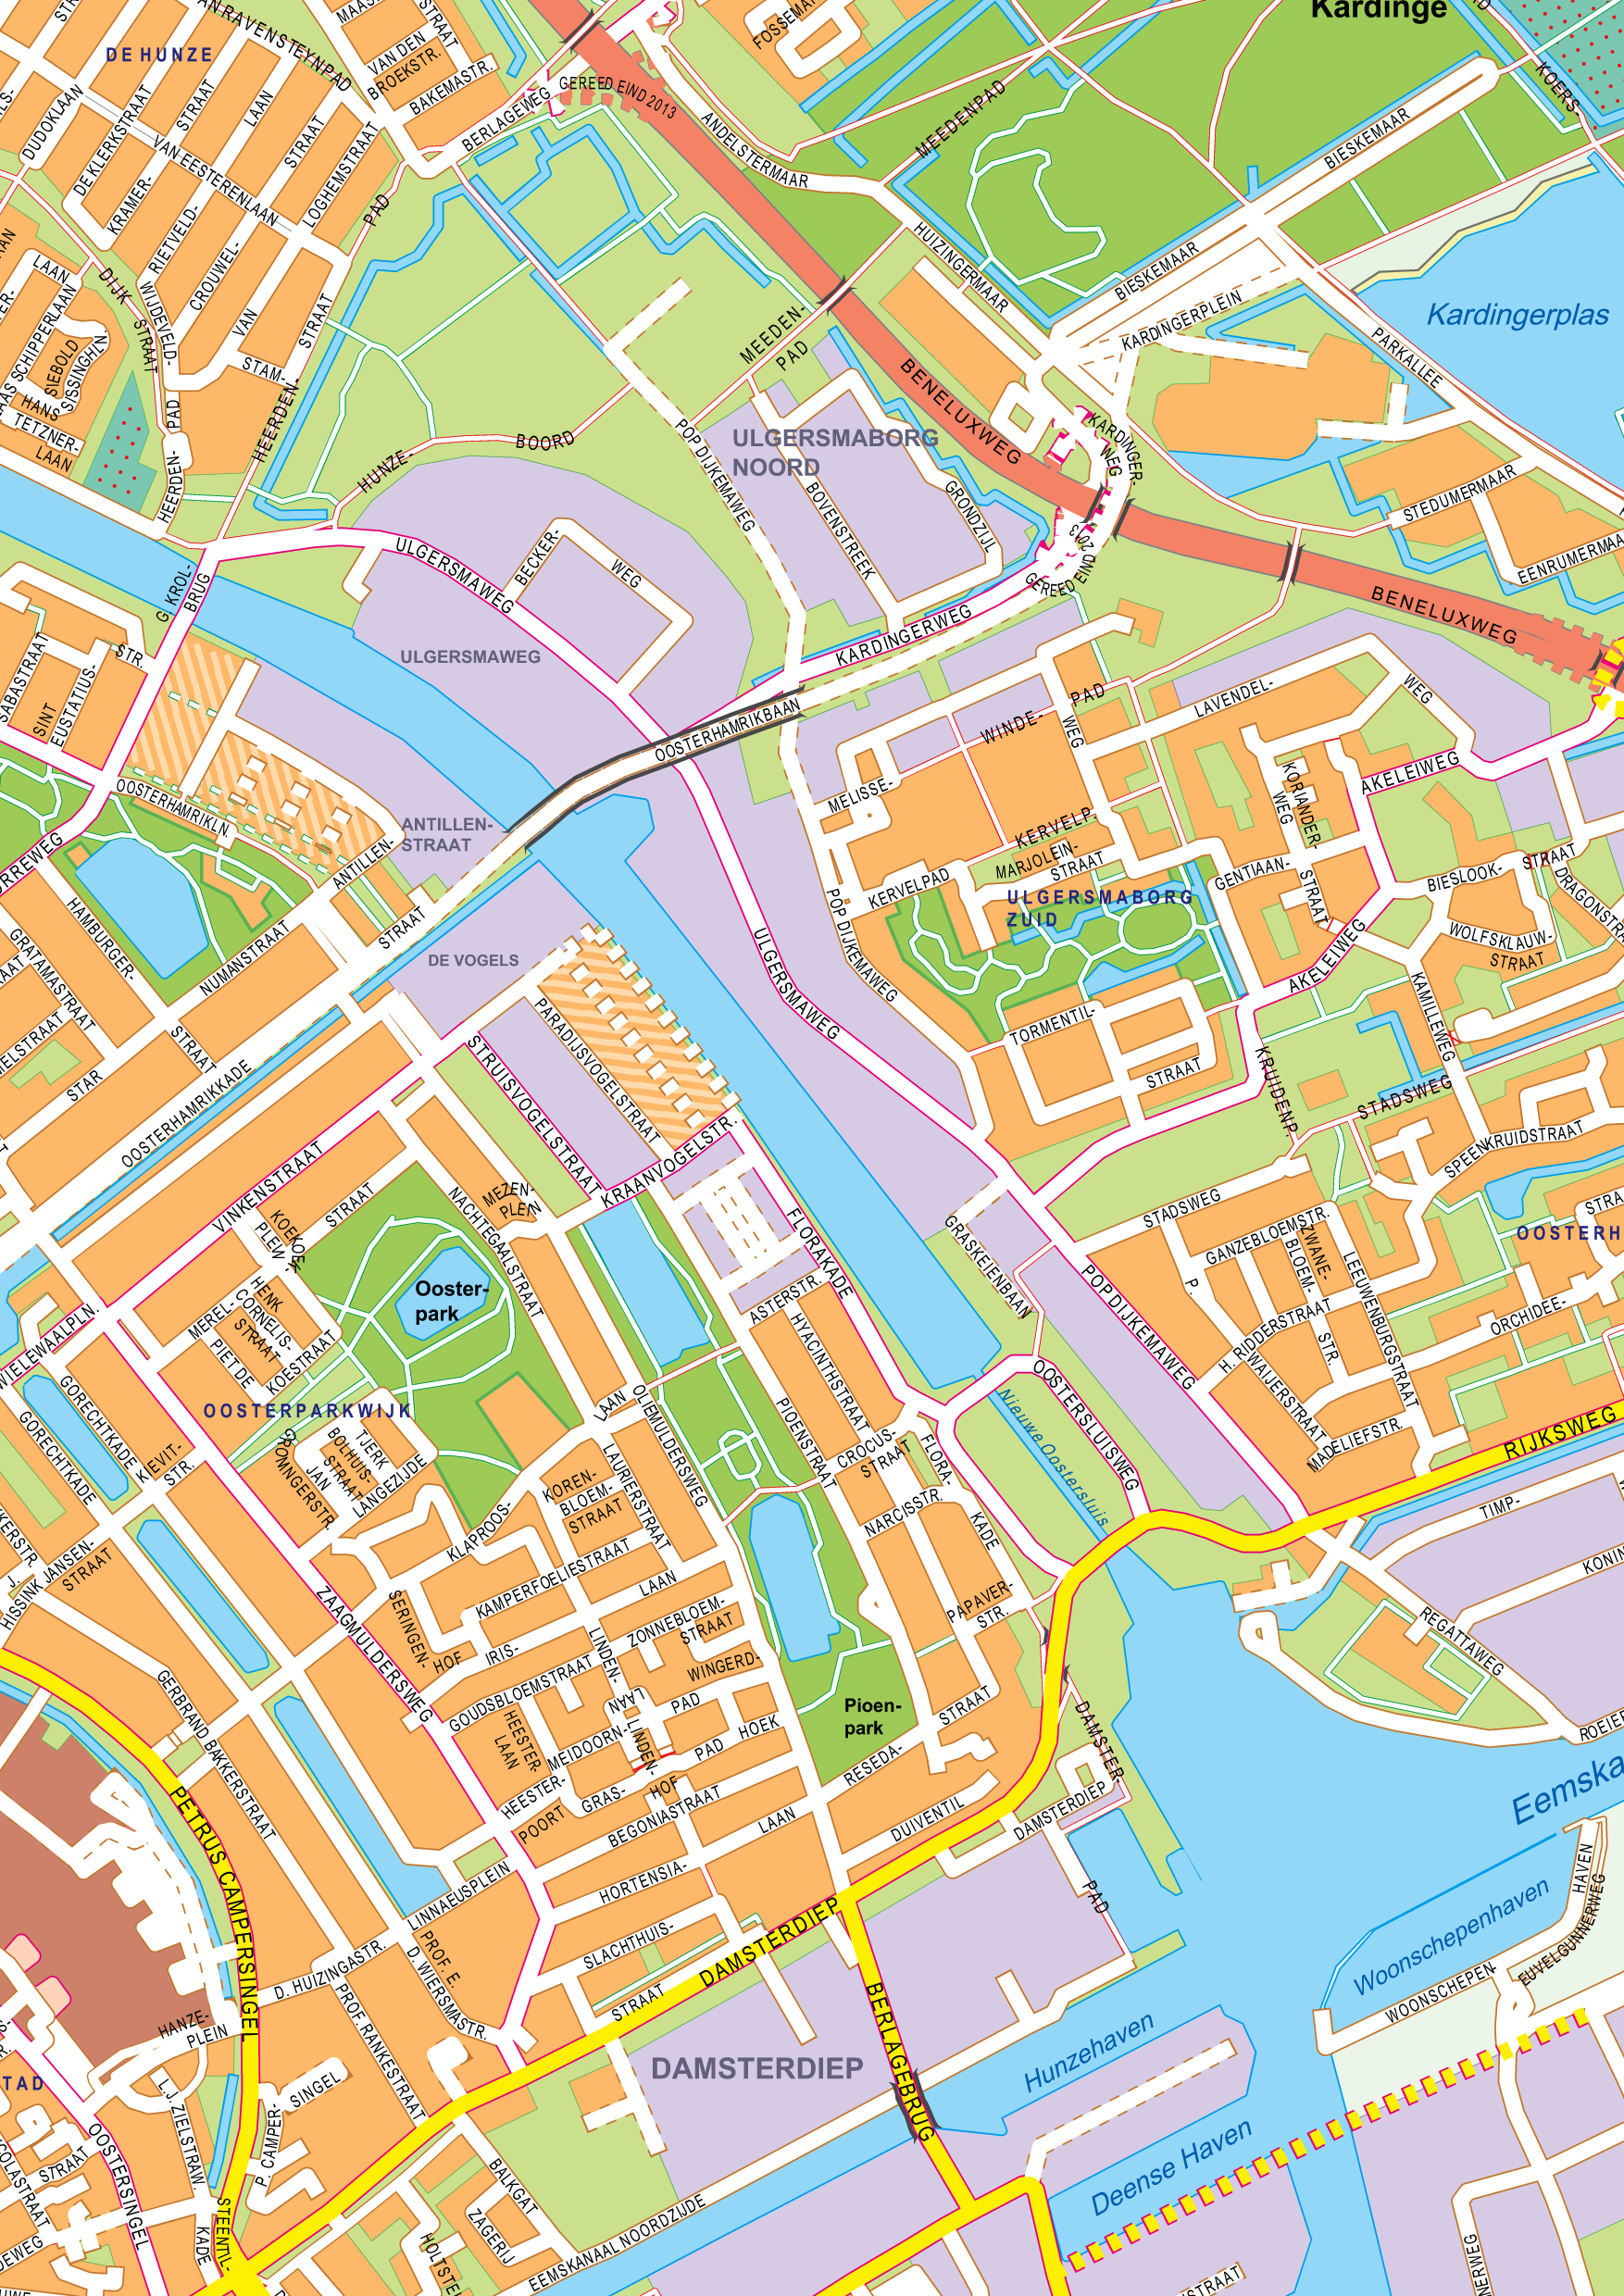 Digital City Map Groningen 397 The World of Mapscom